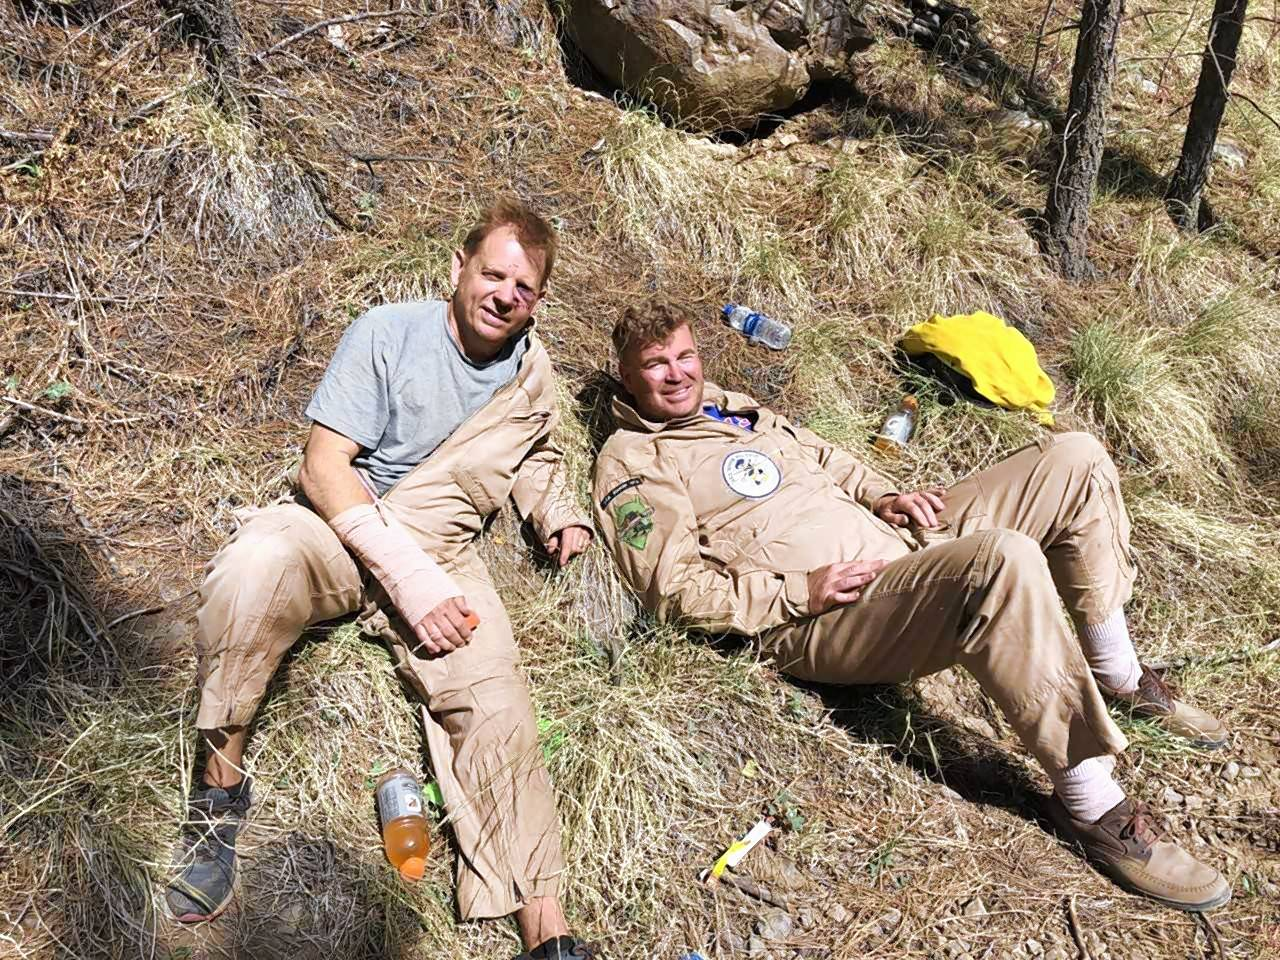 Ken Franzese of Barrington, left, and Ron Carlson of Hawthorn Woods are pictured May 7 after they were rescued by a forest land management crew in Fort Apache Indian Reservation in Arizona. Both were injured jumping with parachutes from their disabled plane the day before.